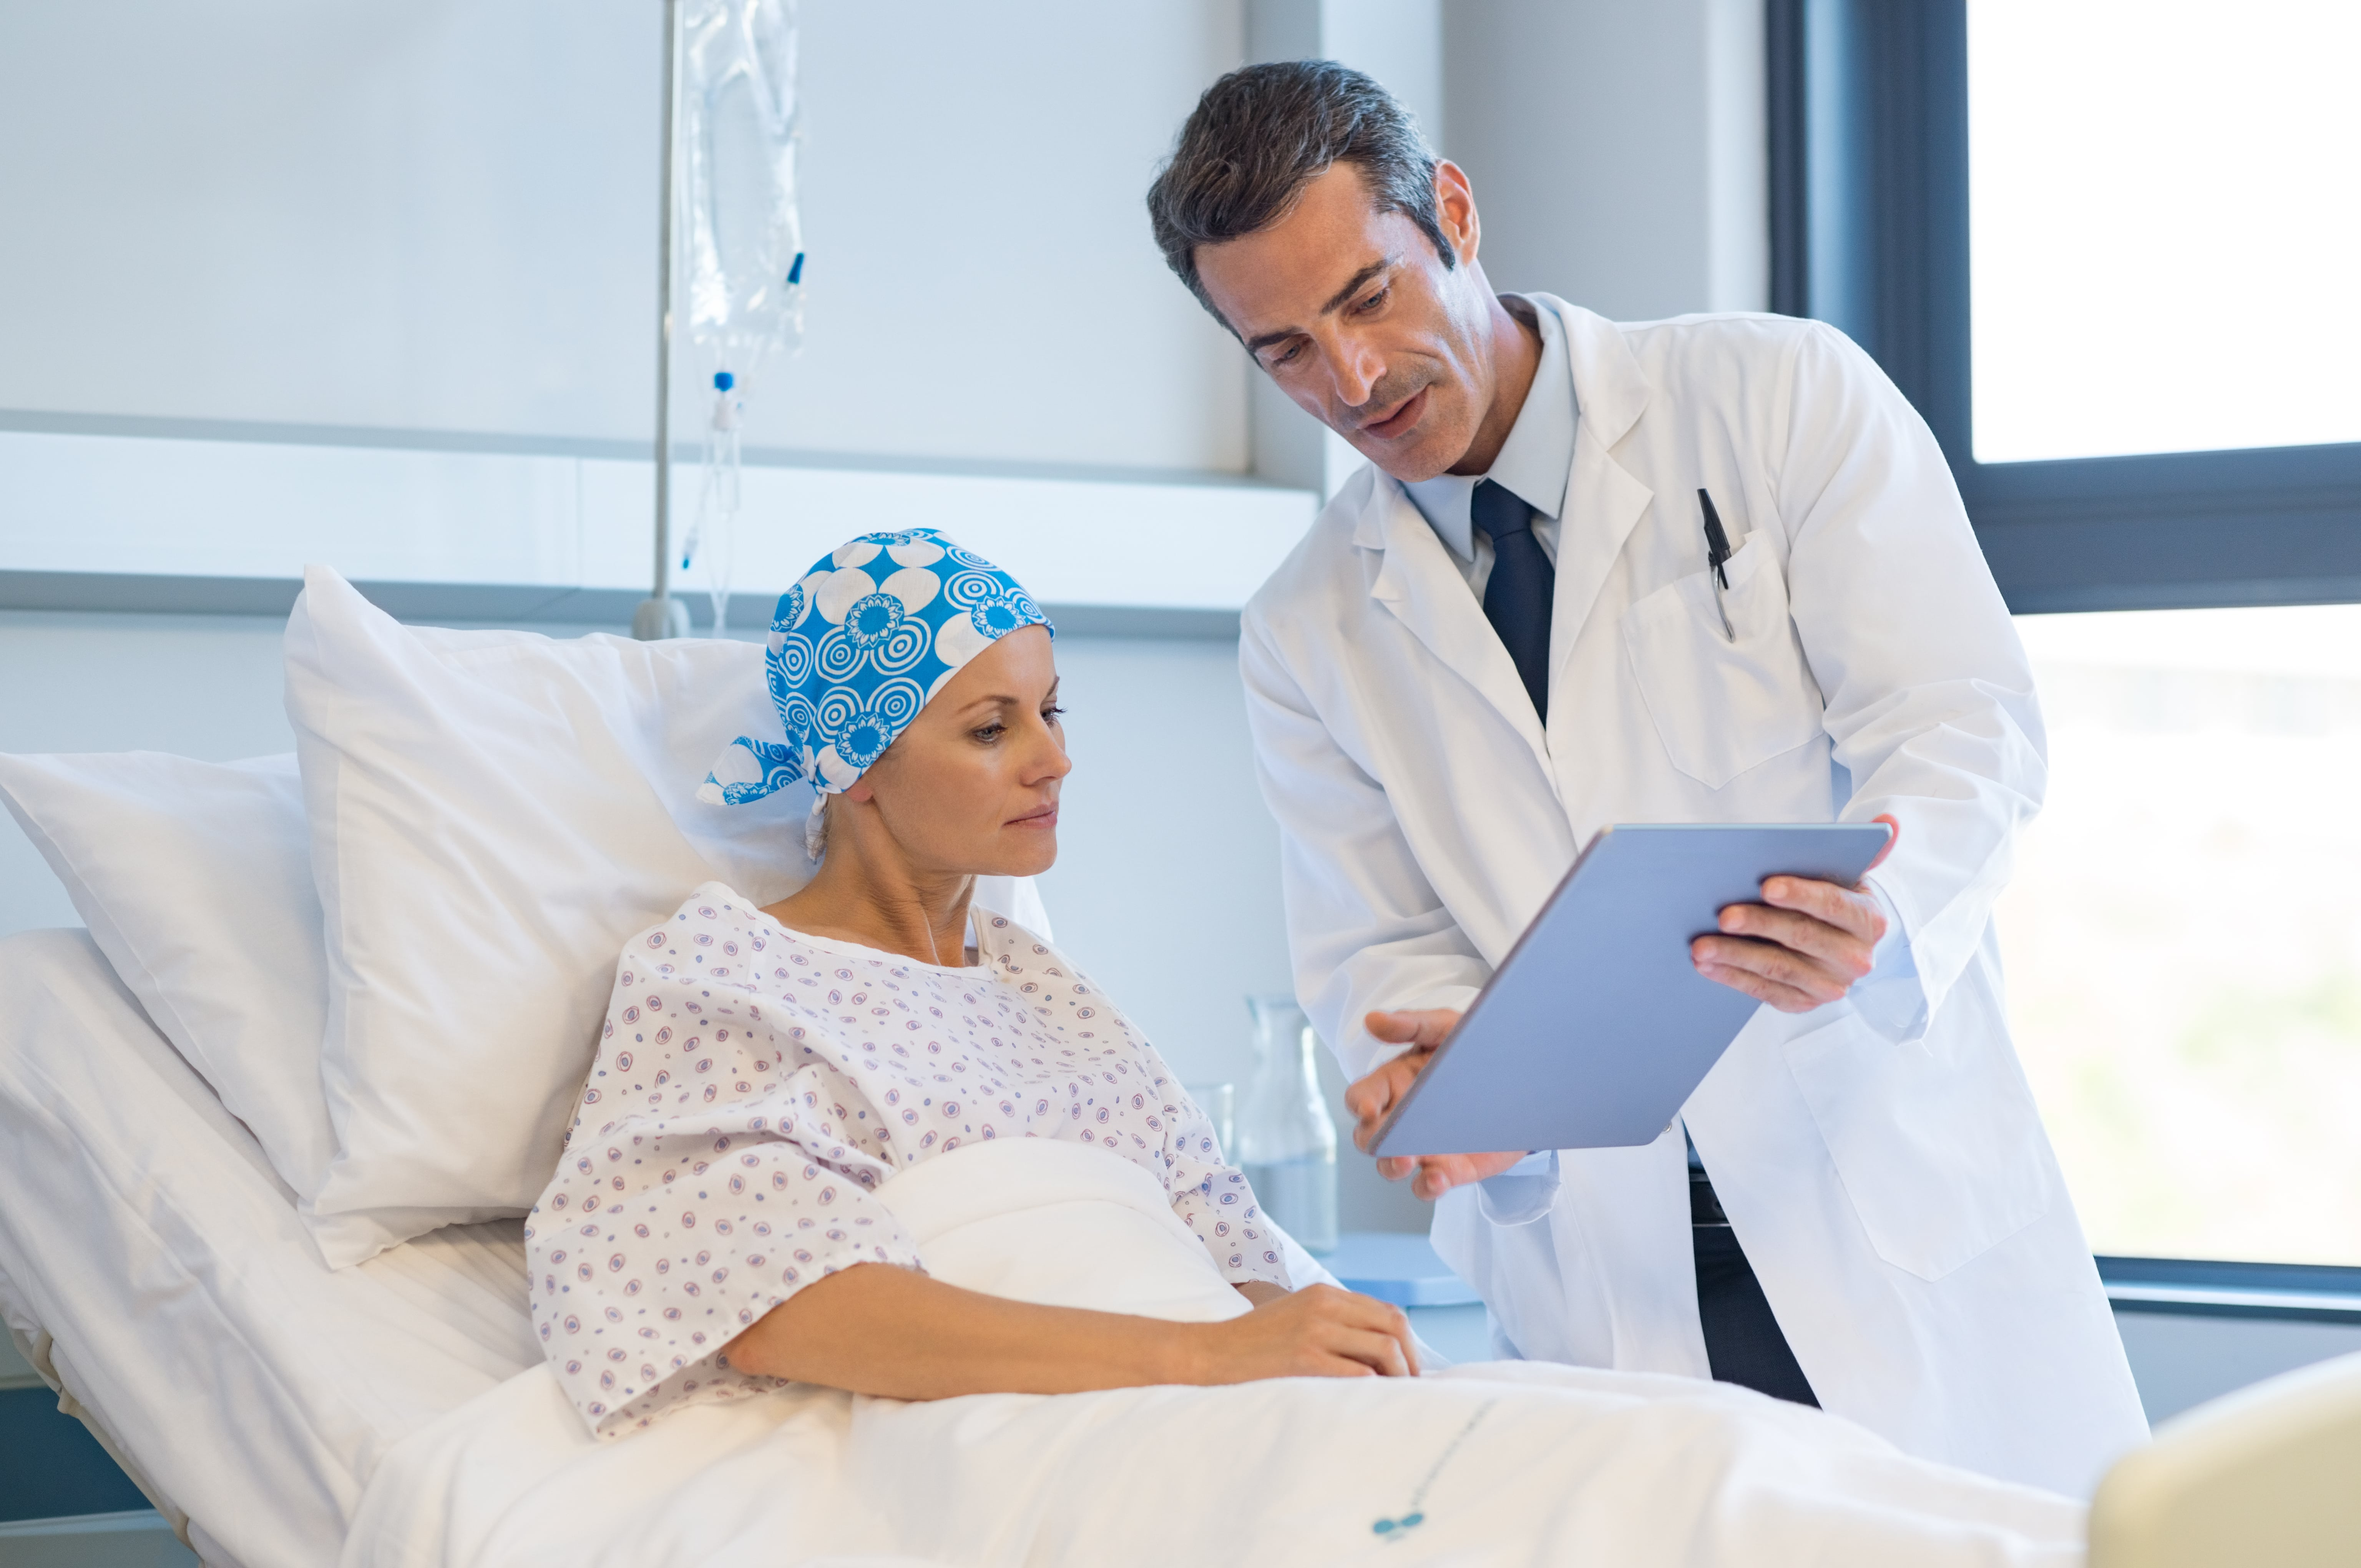 Woman gets cancer diagnosis treatment plan from doctor